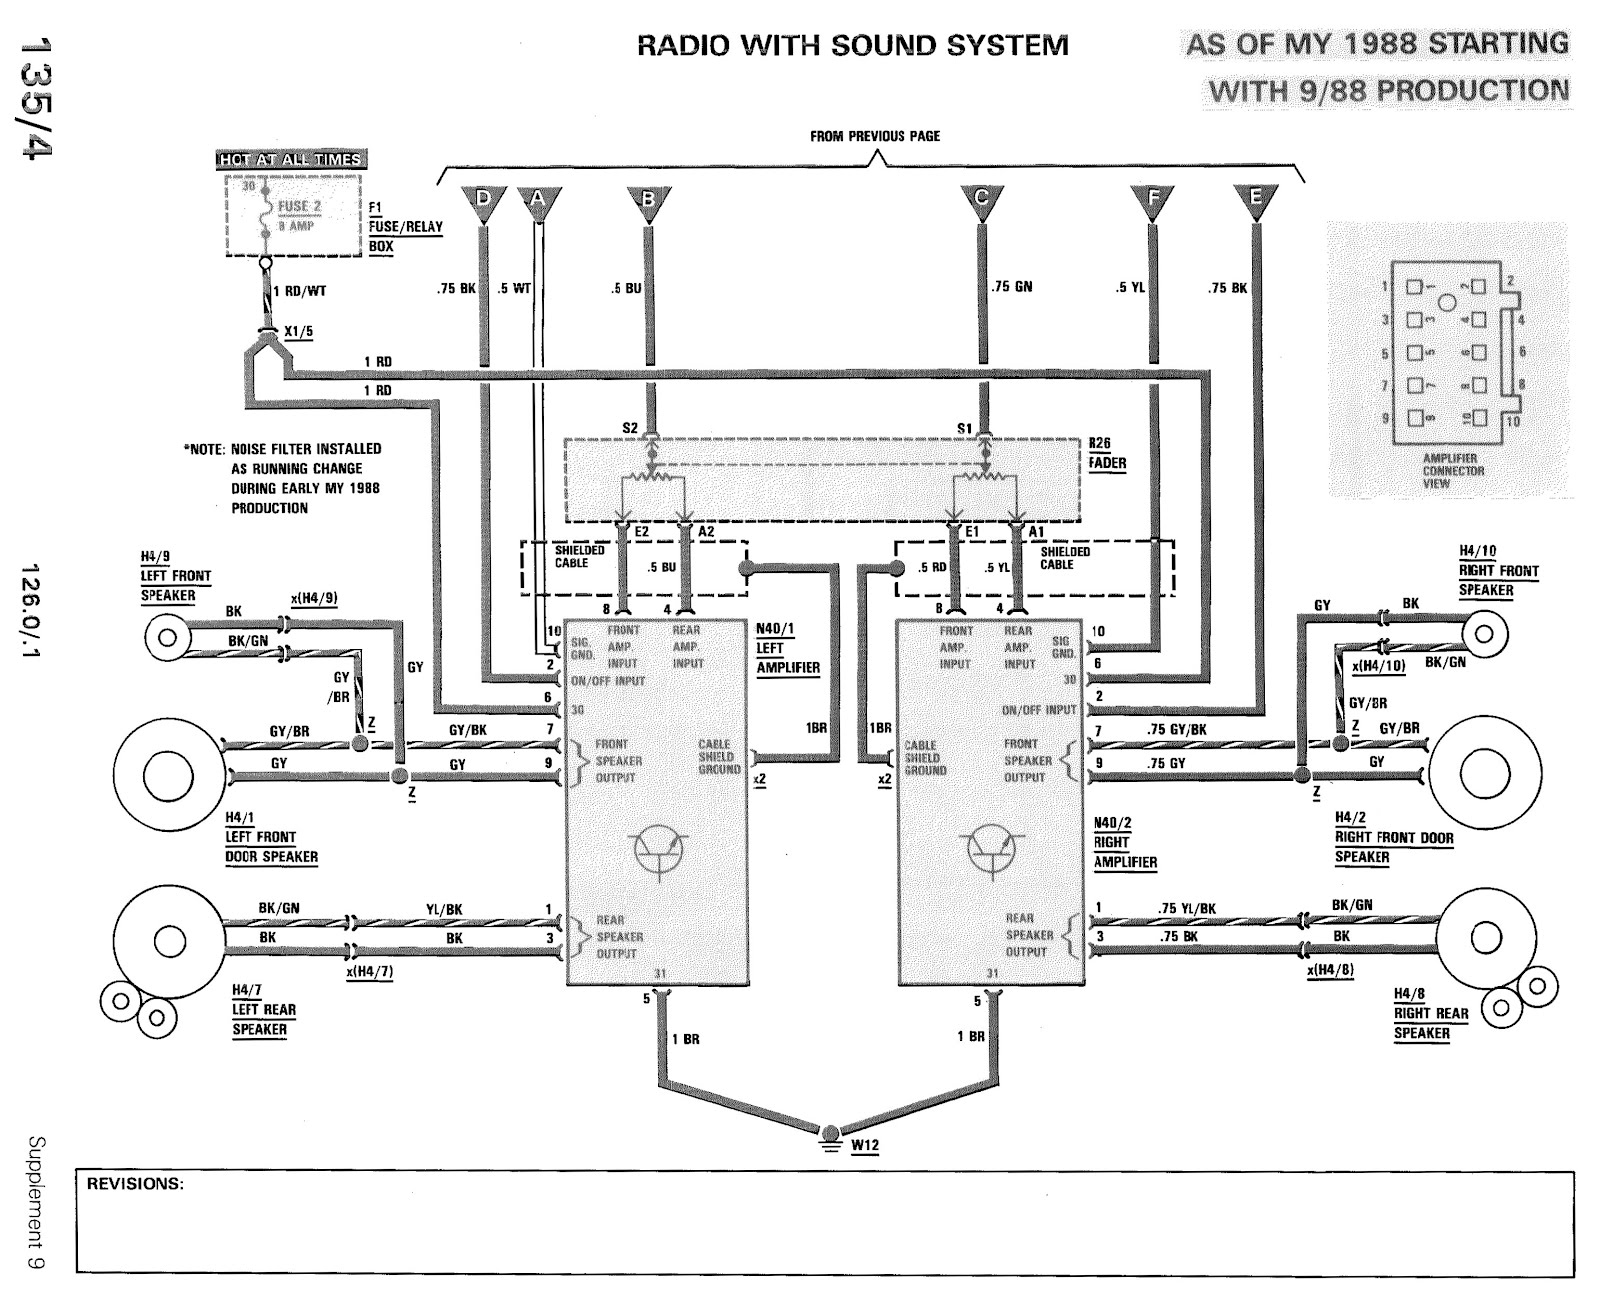 Mercedes Benz Radio Wiring Diagram Mercedes W126 Radio